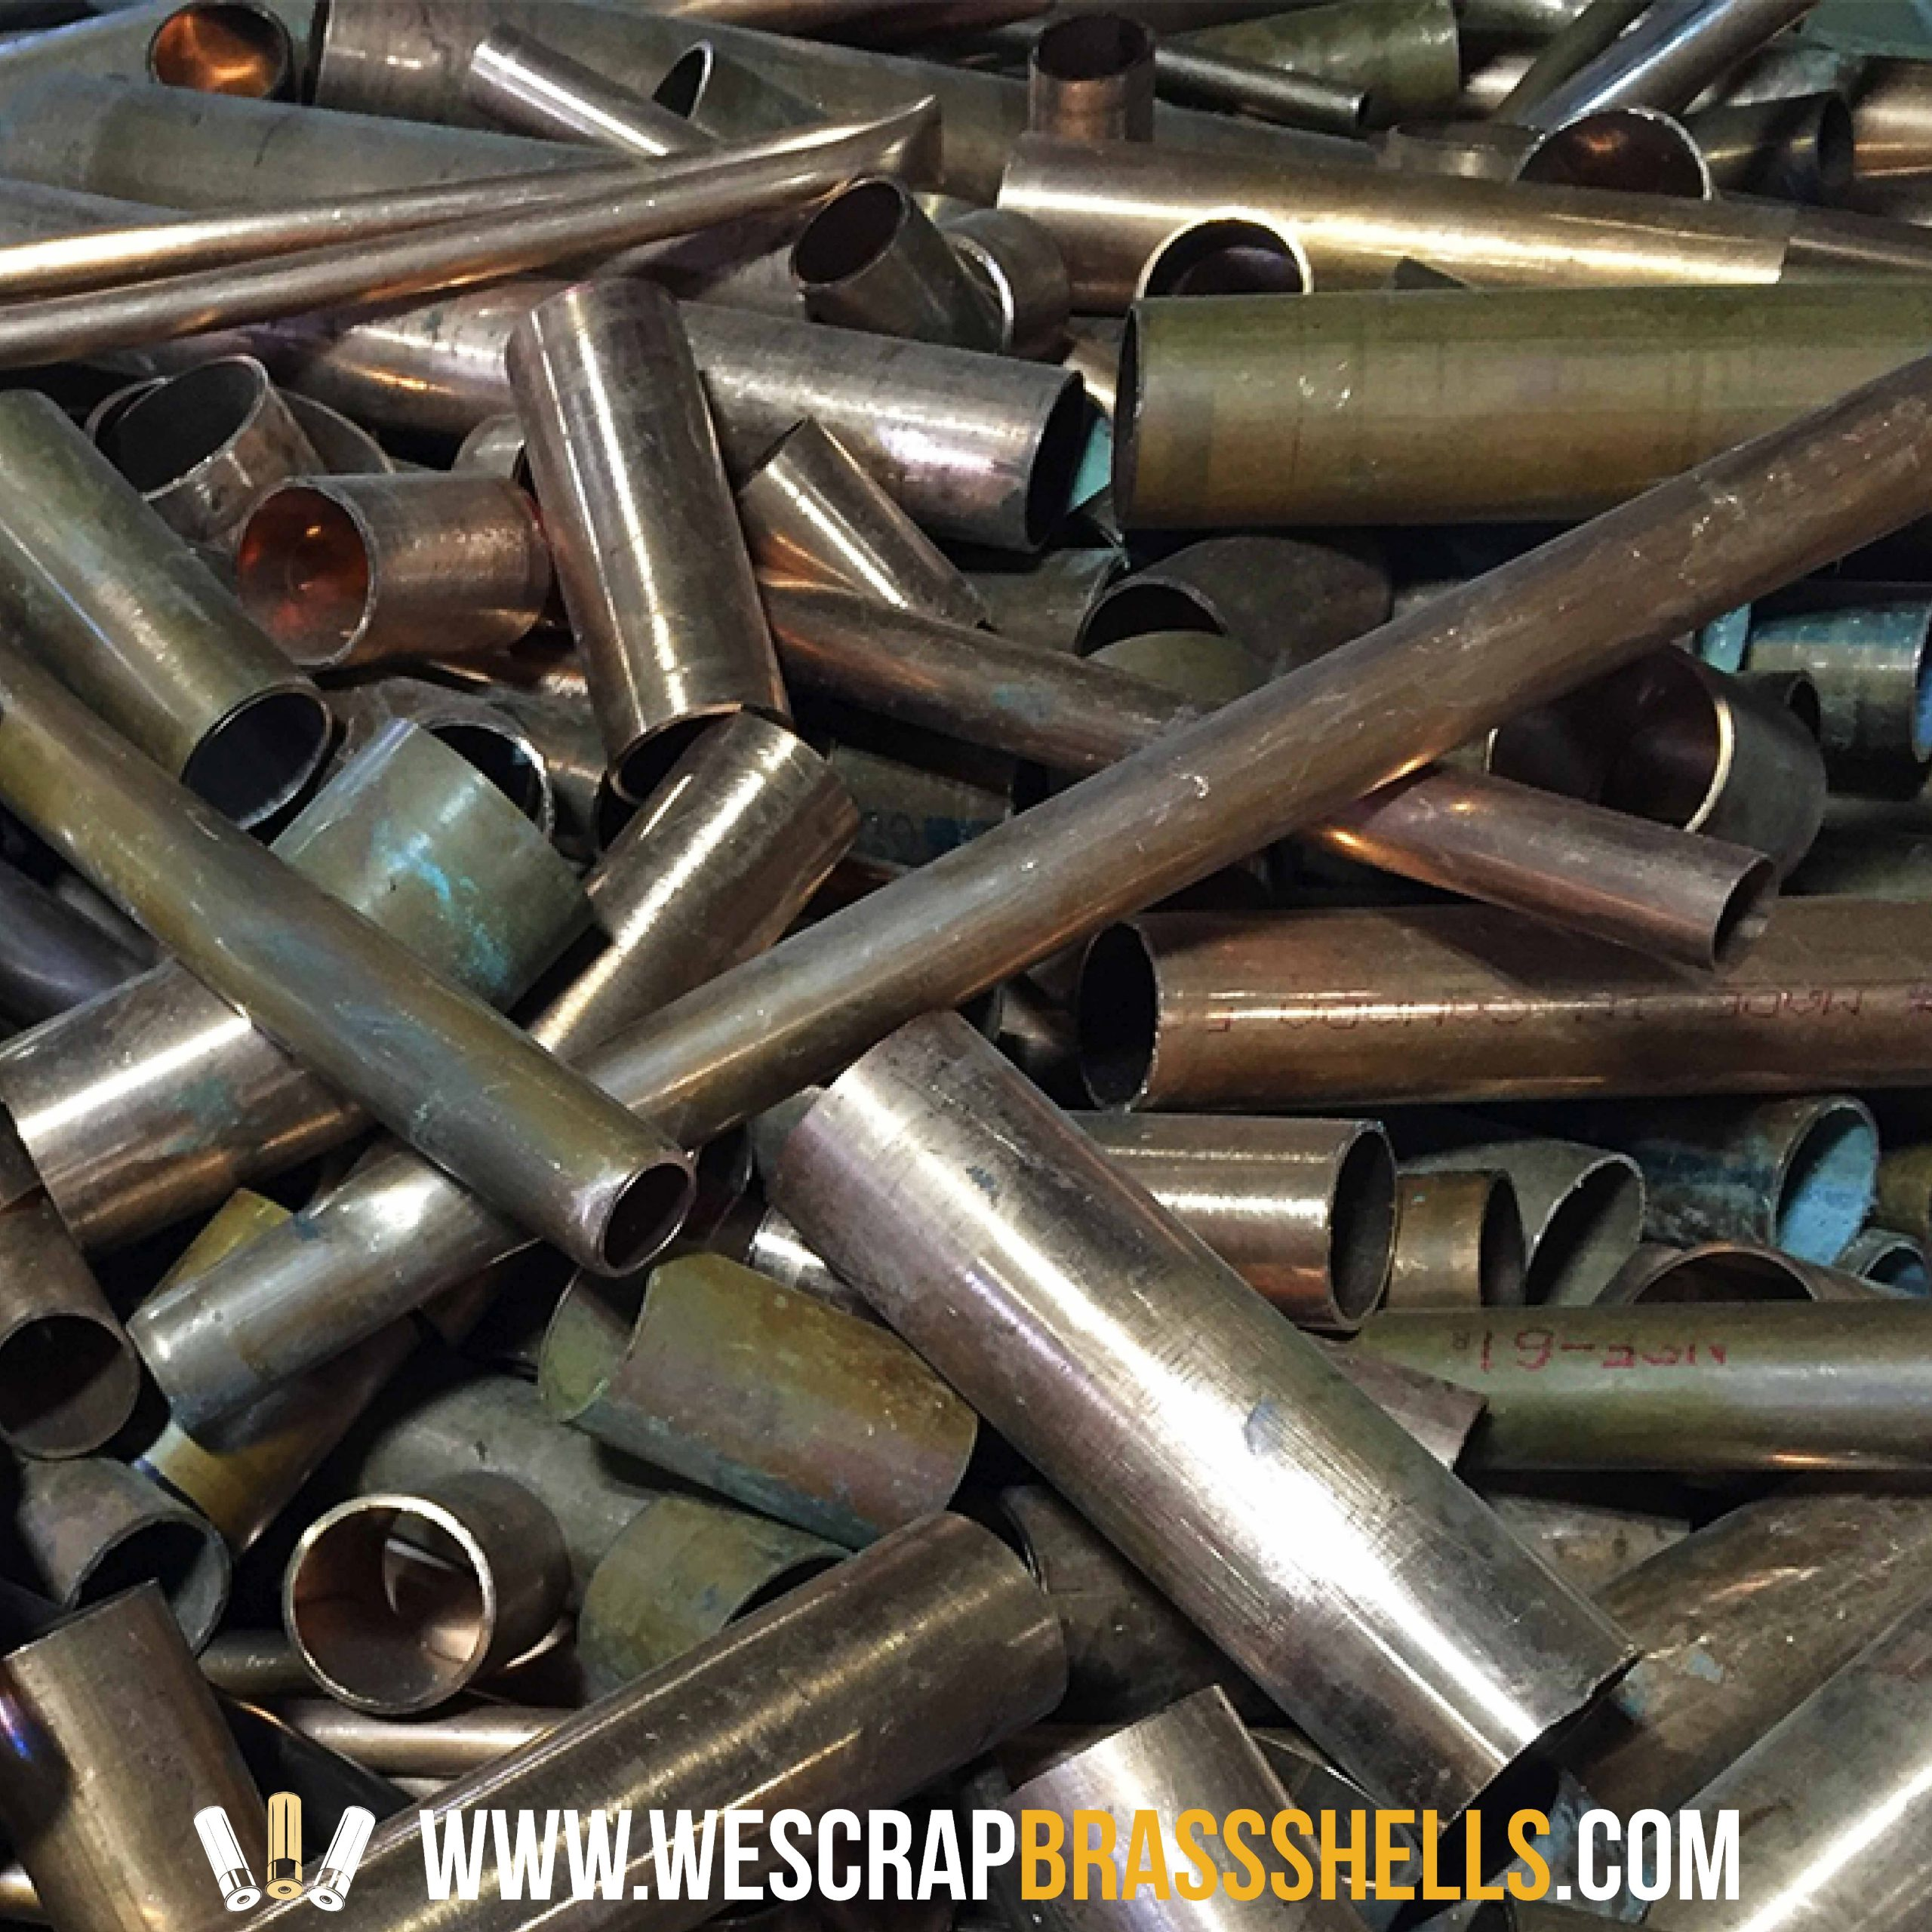 How to Recycle Brass Shells: The Process